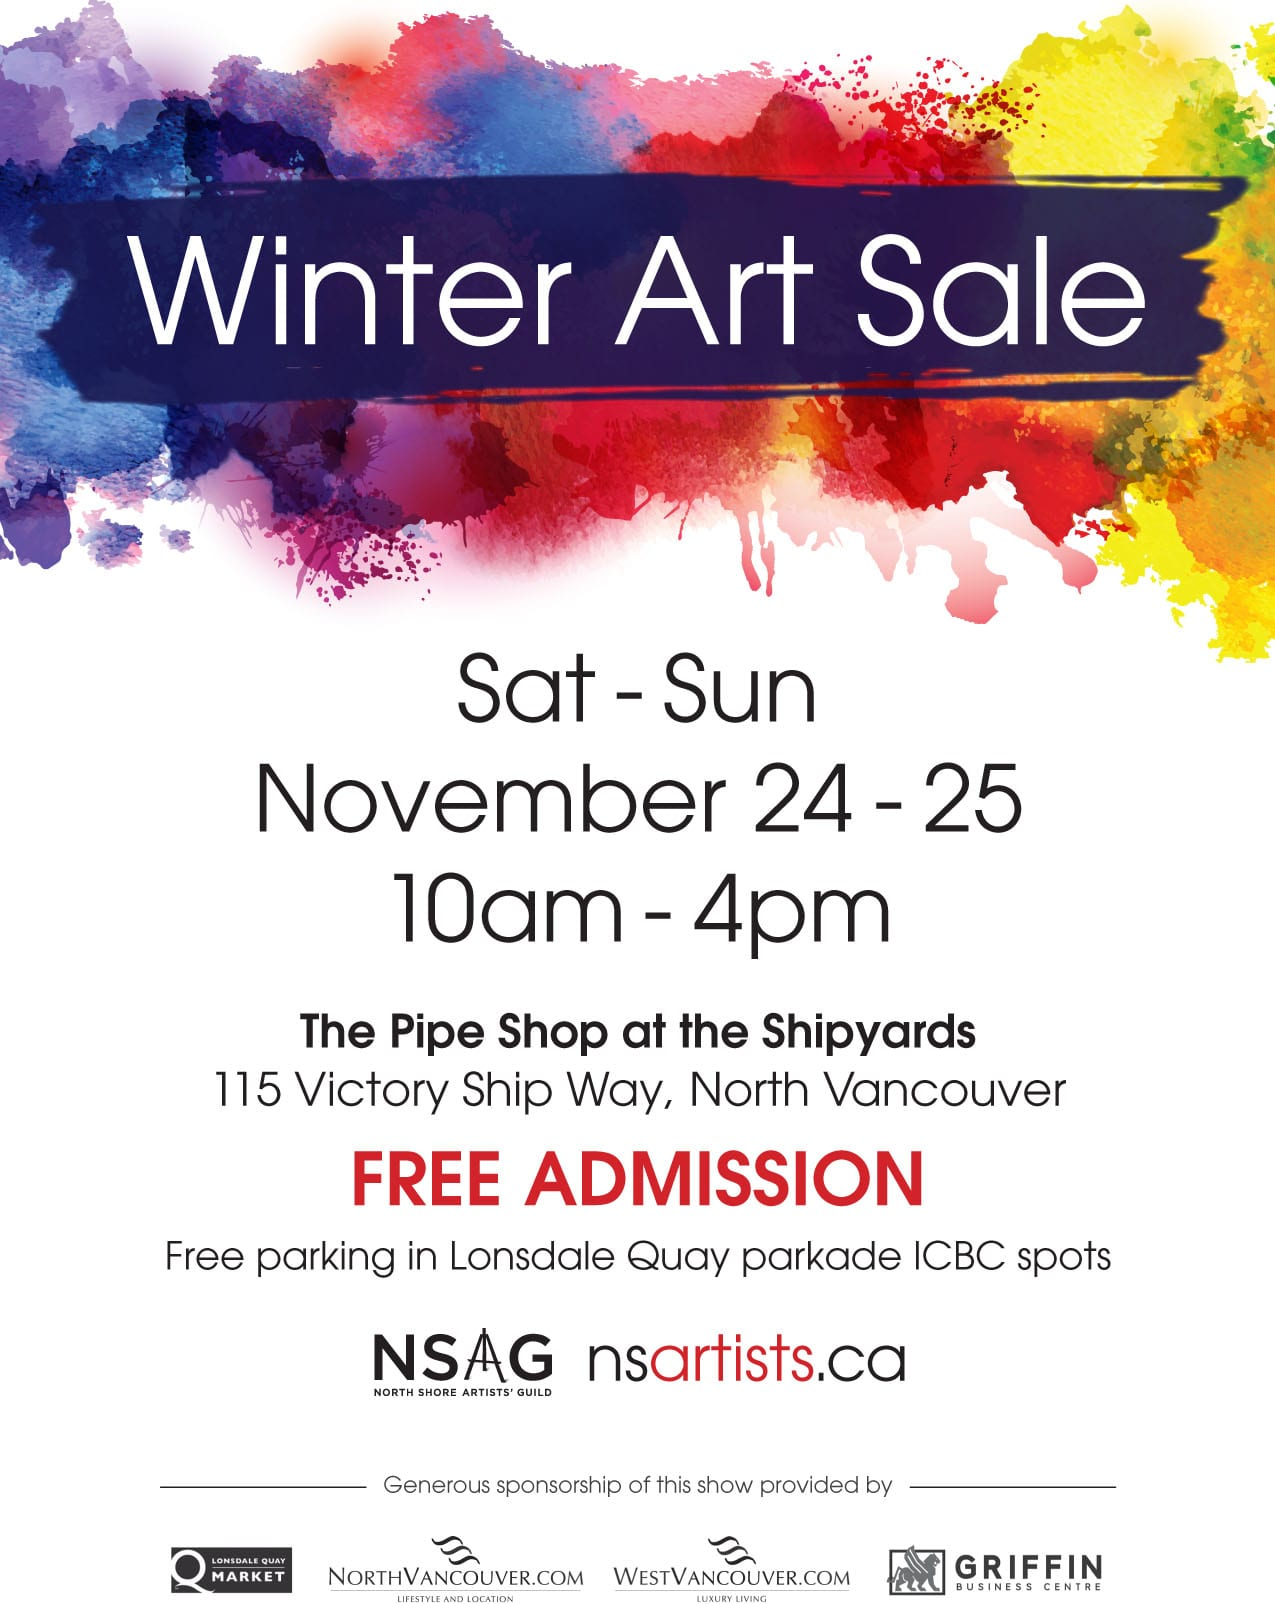 Winter Art Sale Lower Lonsdale